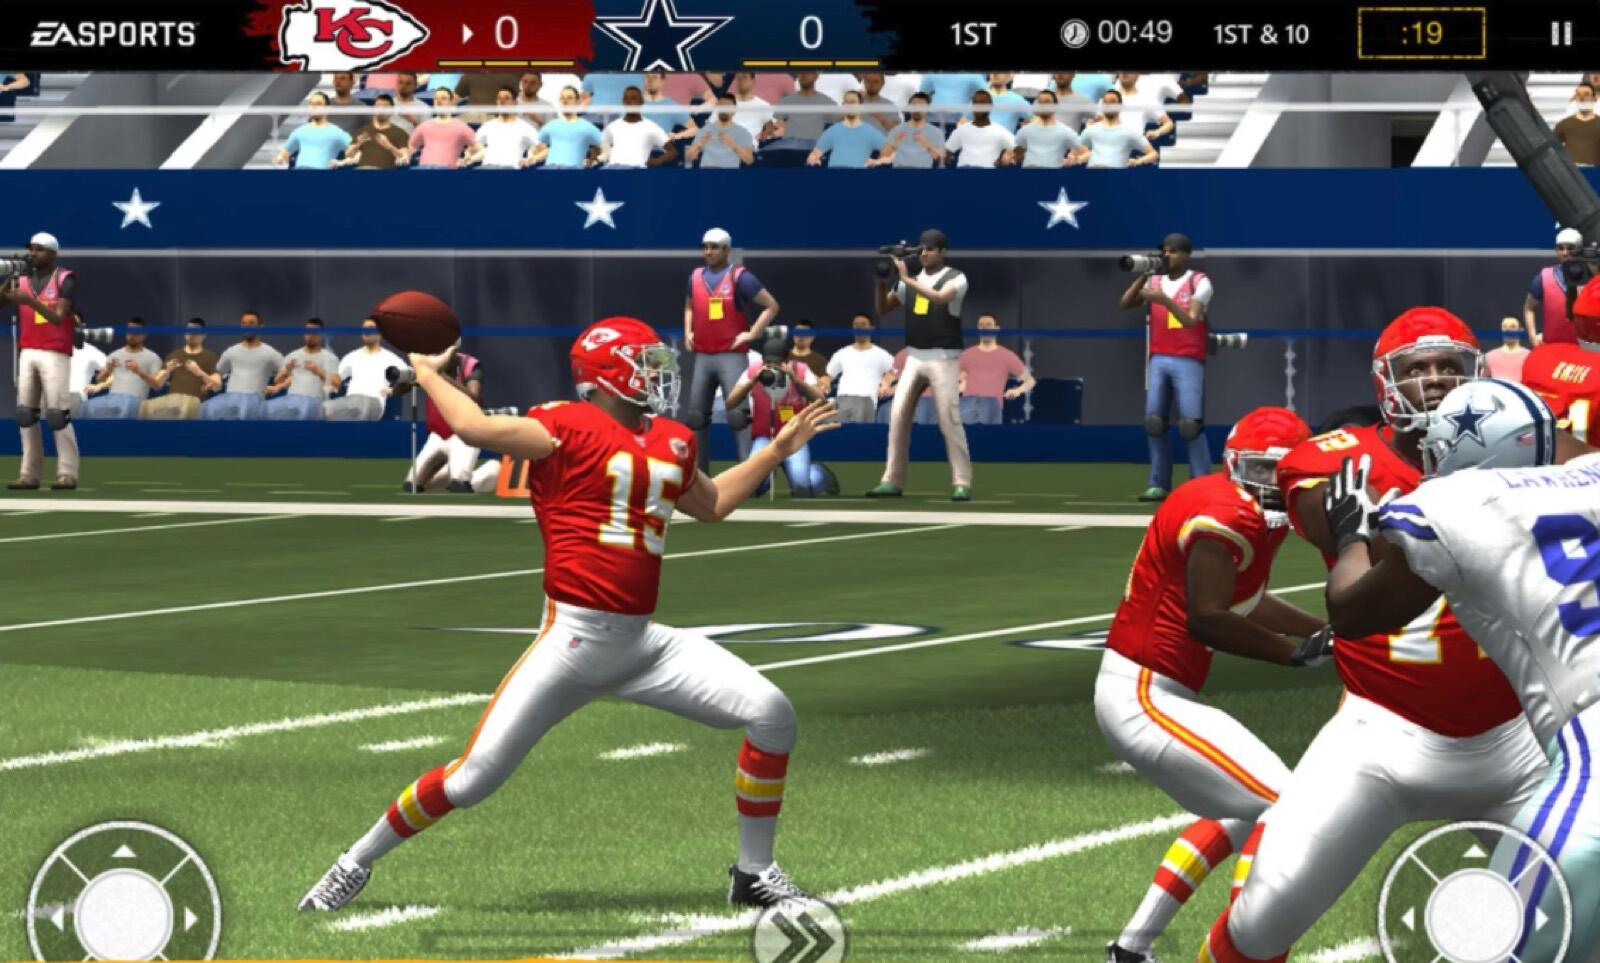 12 sports games to play on iOS while live sports are benched - CNET